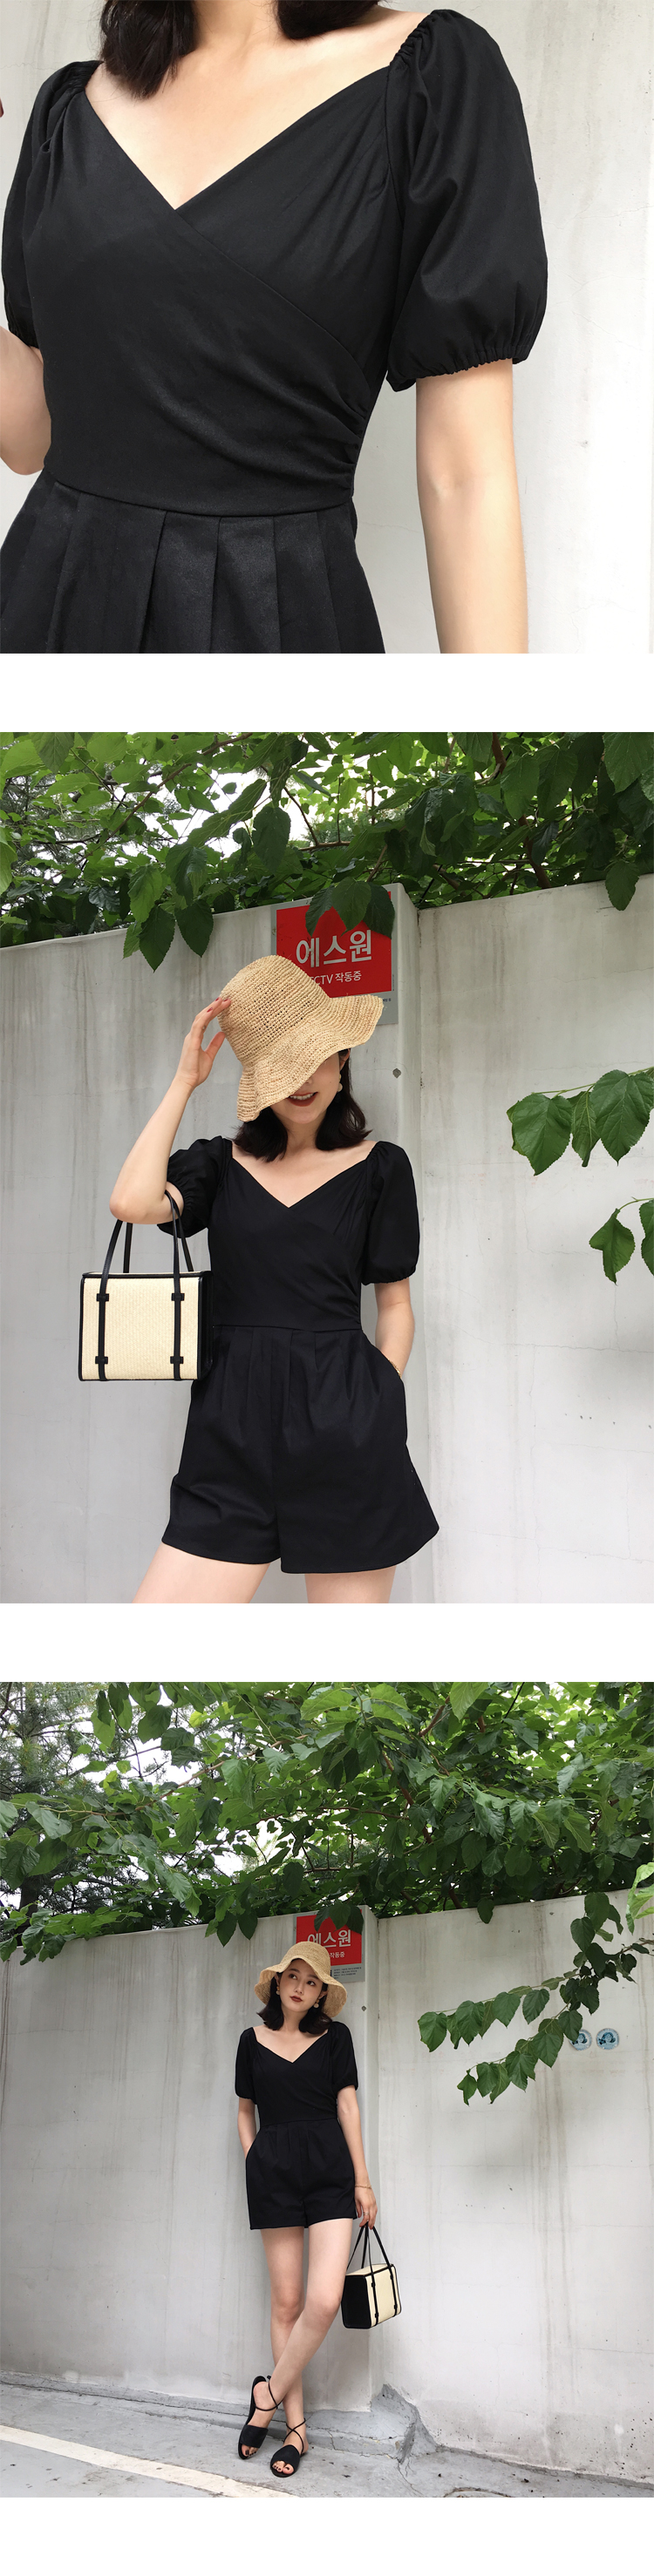 H176bcdf208174f03a2ab9eff13683c4d0 - LLZACOOSH Runway Women Solid Rompers Summer Short Puff Sleeve Casual Playsuits Holiday Short Beach Holiday Jumpsuits